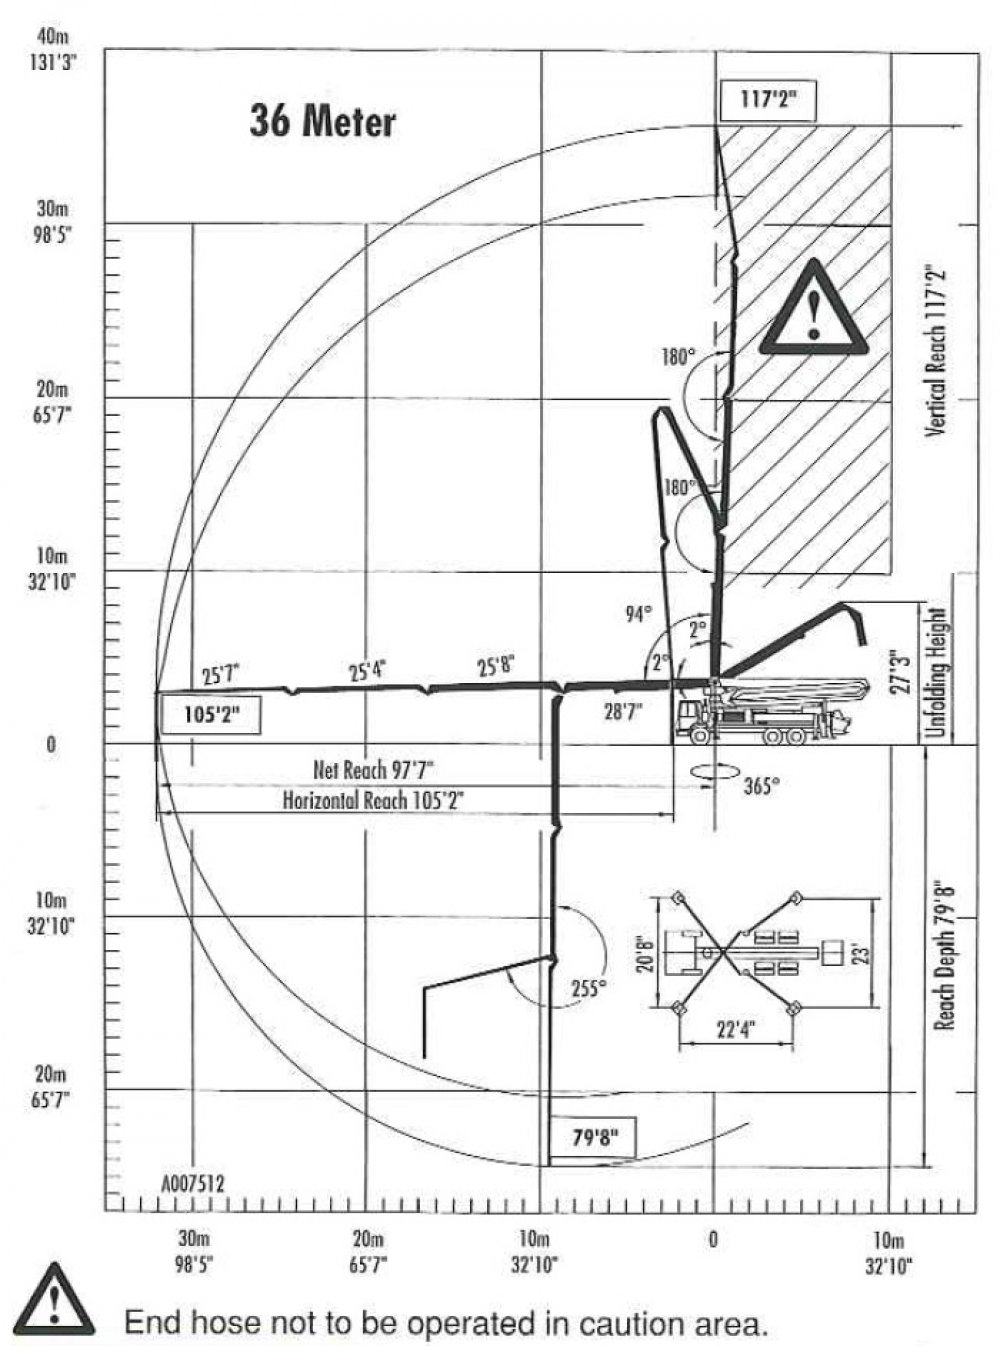 versalift bucket truck diagram html